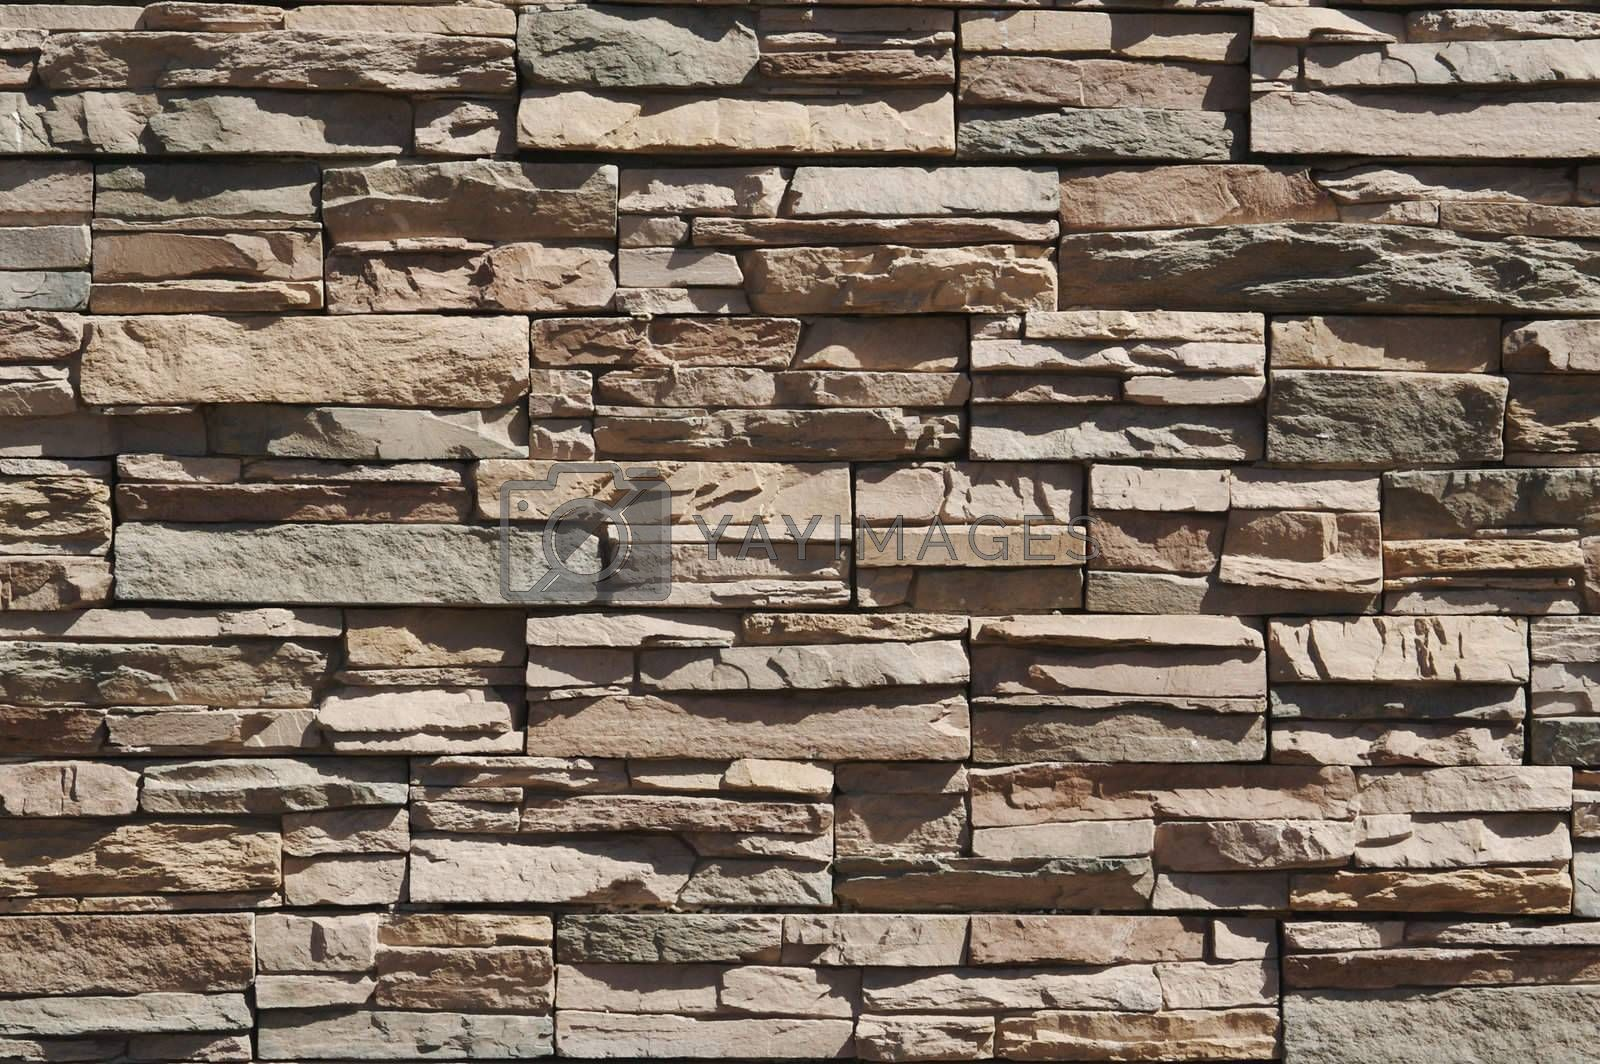 Abstract rock wall background pattern.